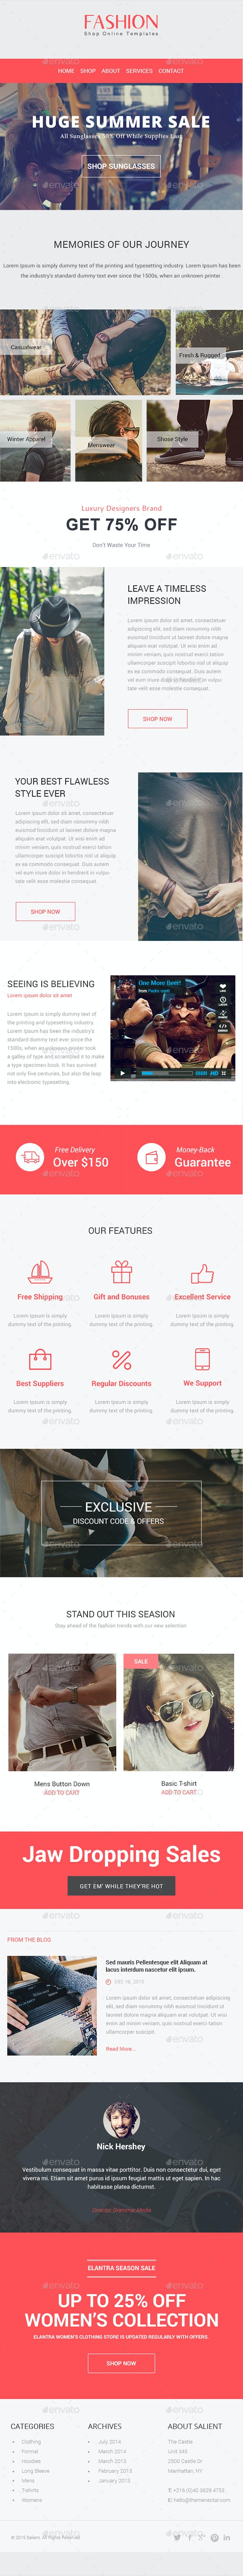 Fashion - E-Newsletter PSD Template - E-newsletters Web Elements